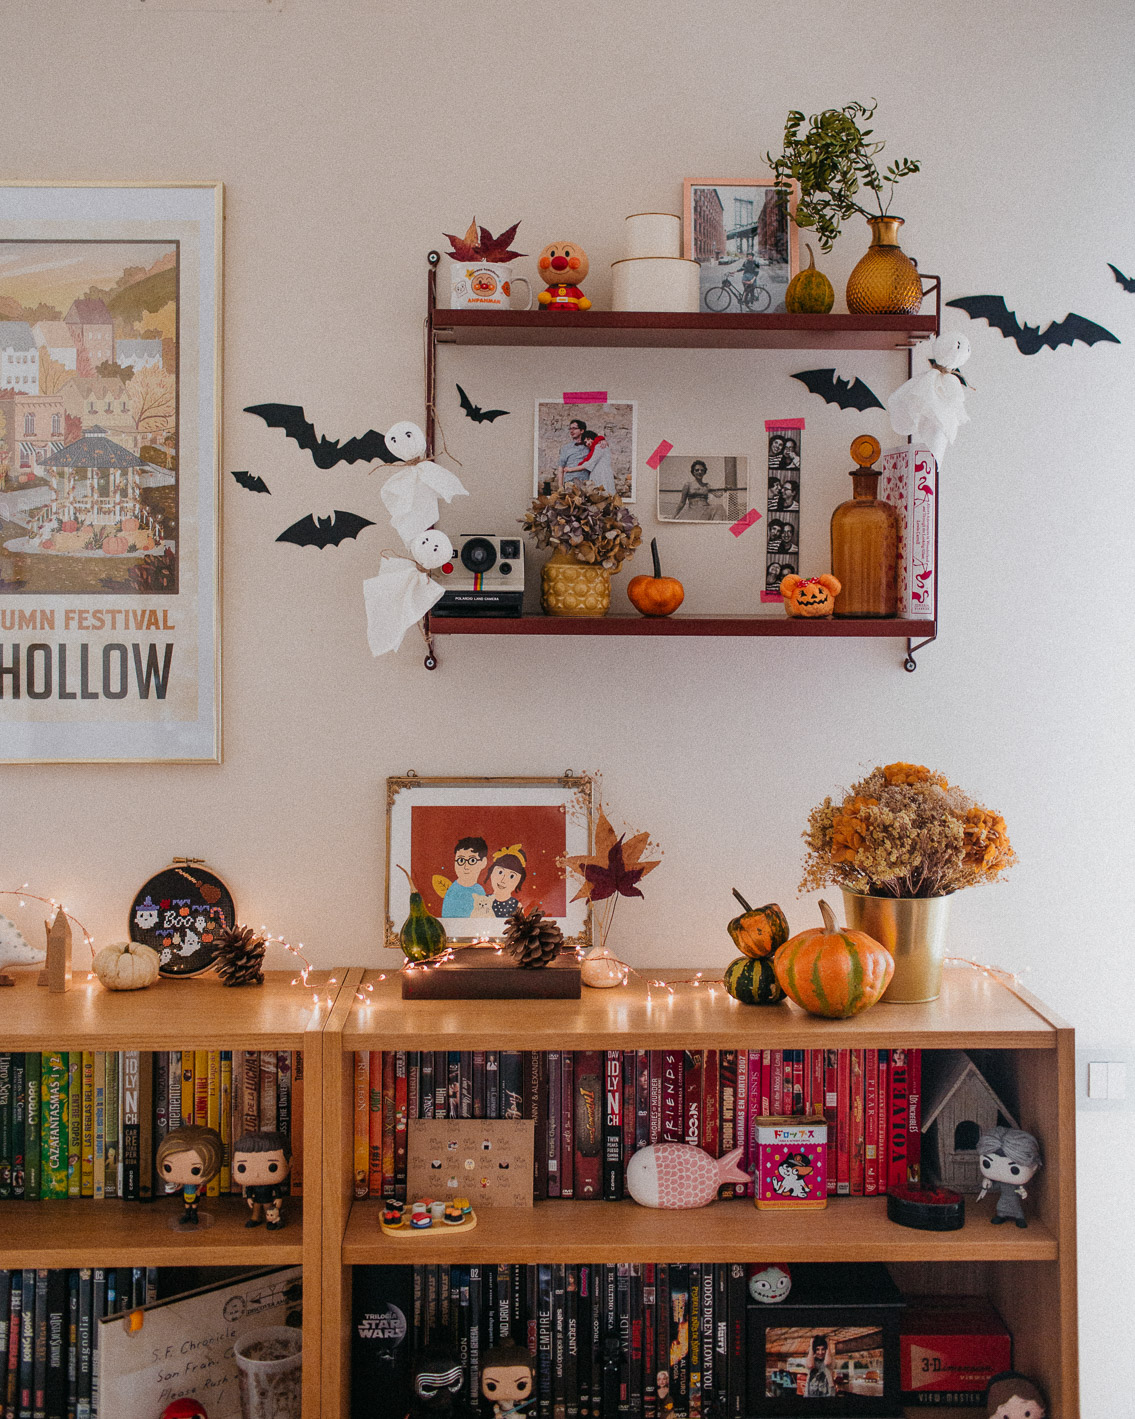 Halloween decor 2020 - The cat, you and us